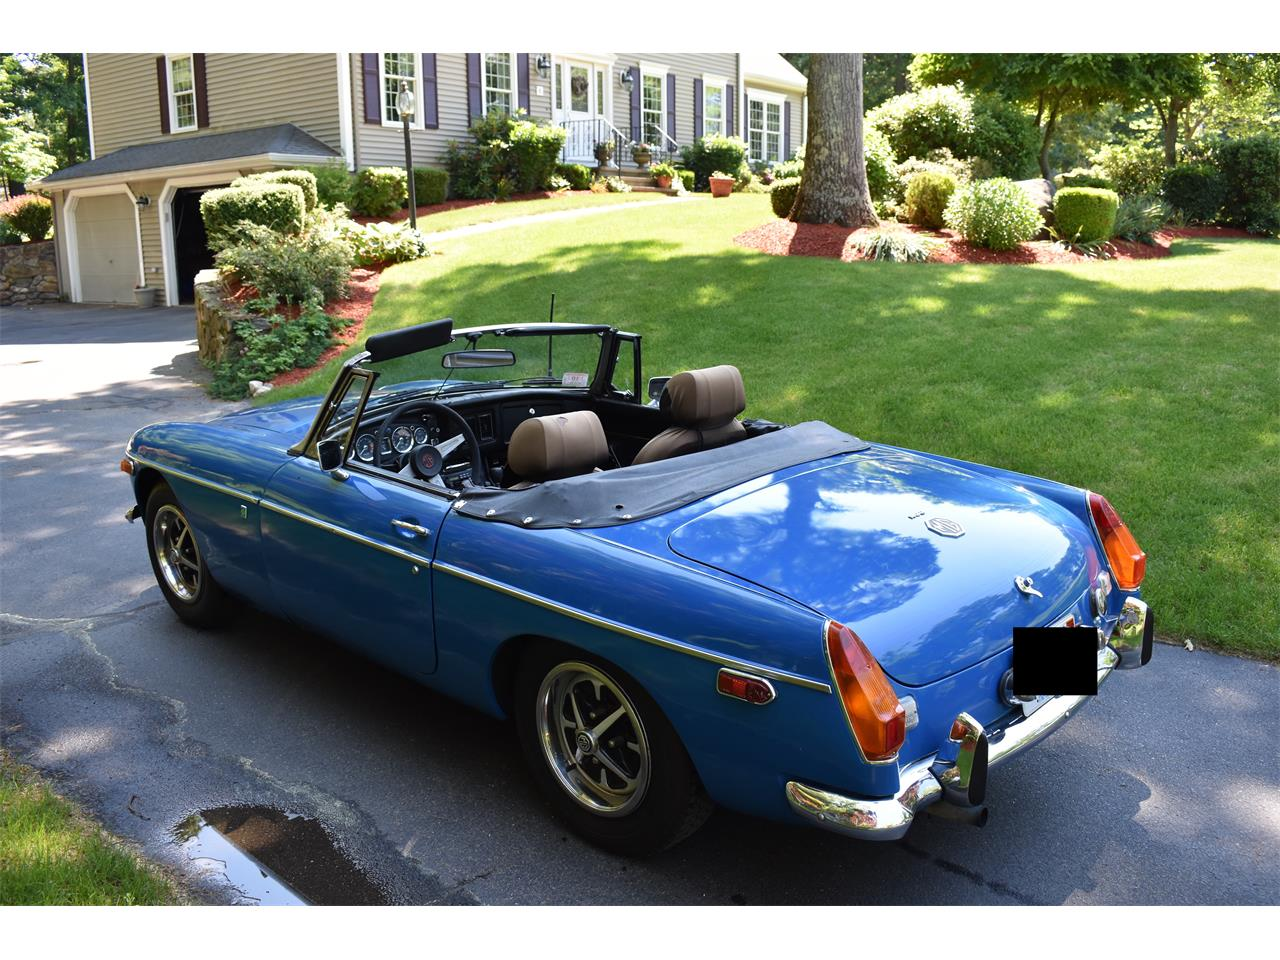 Large Picture of '74 MGB located in Massachusetts - $7,500.00 Offered by a Private Seller - LB9Q